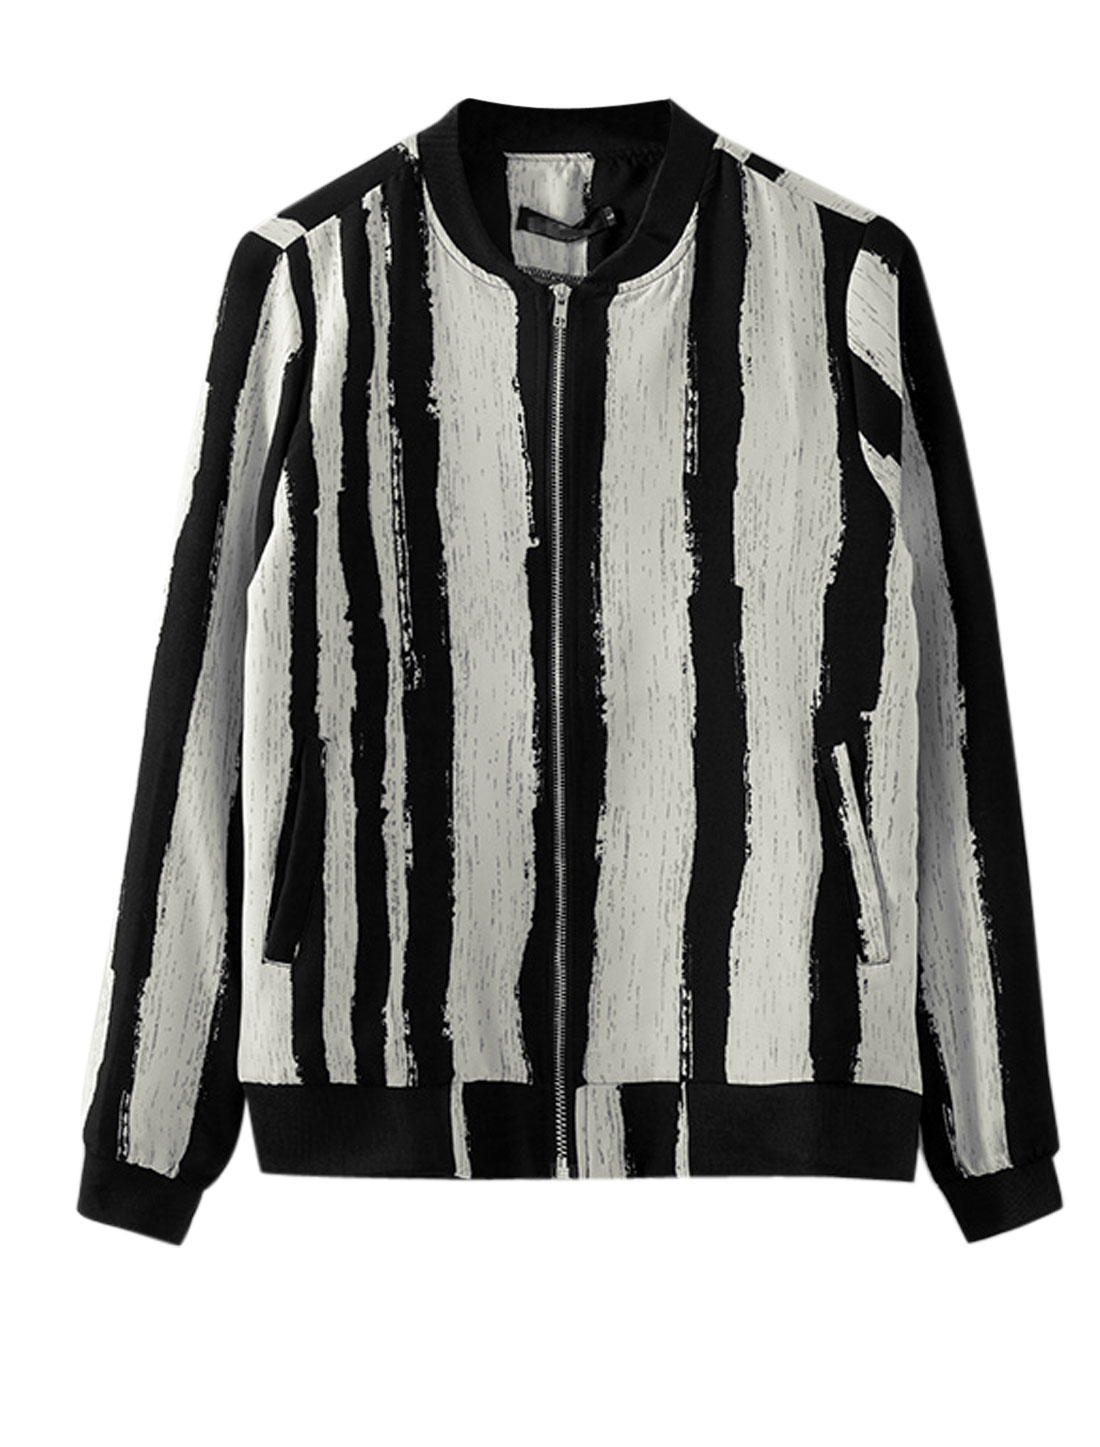 Man Beige Black Stand Collar Long Sleeves Zip Closure Stripes Casual Jacket M